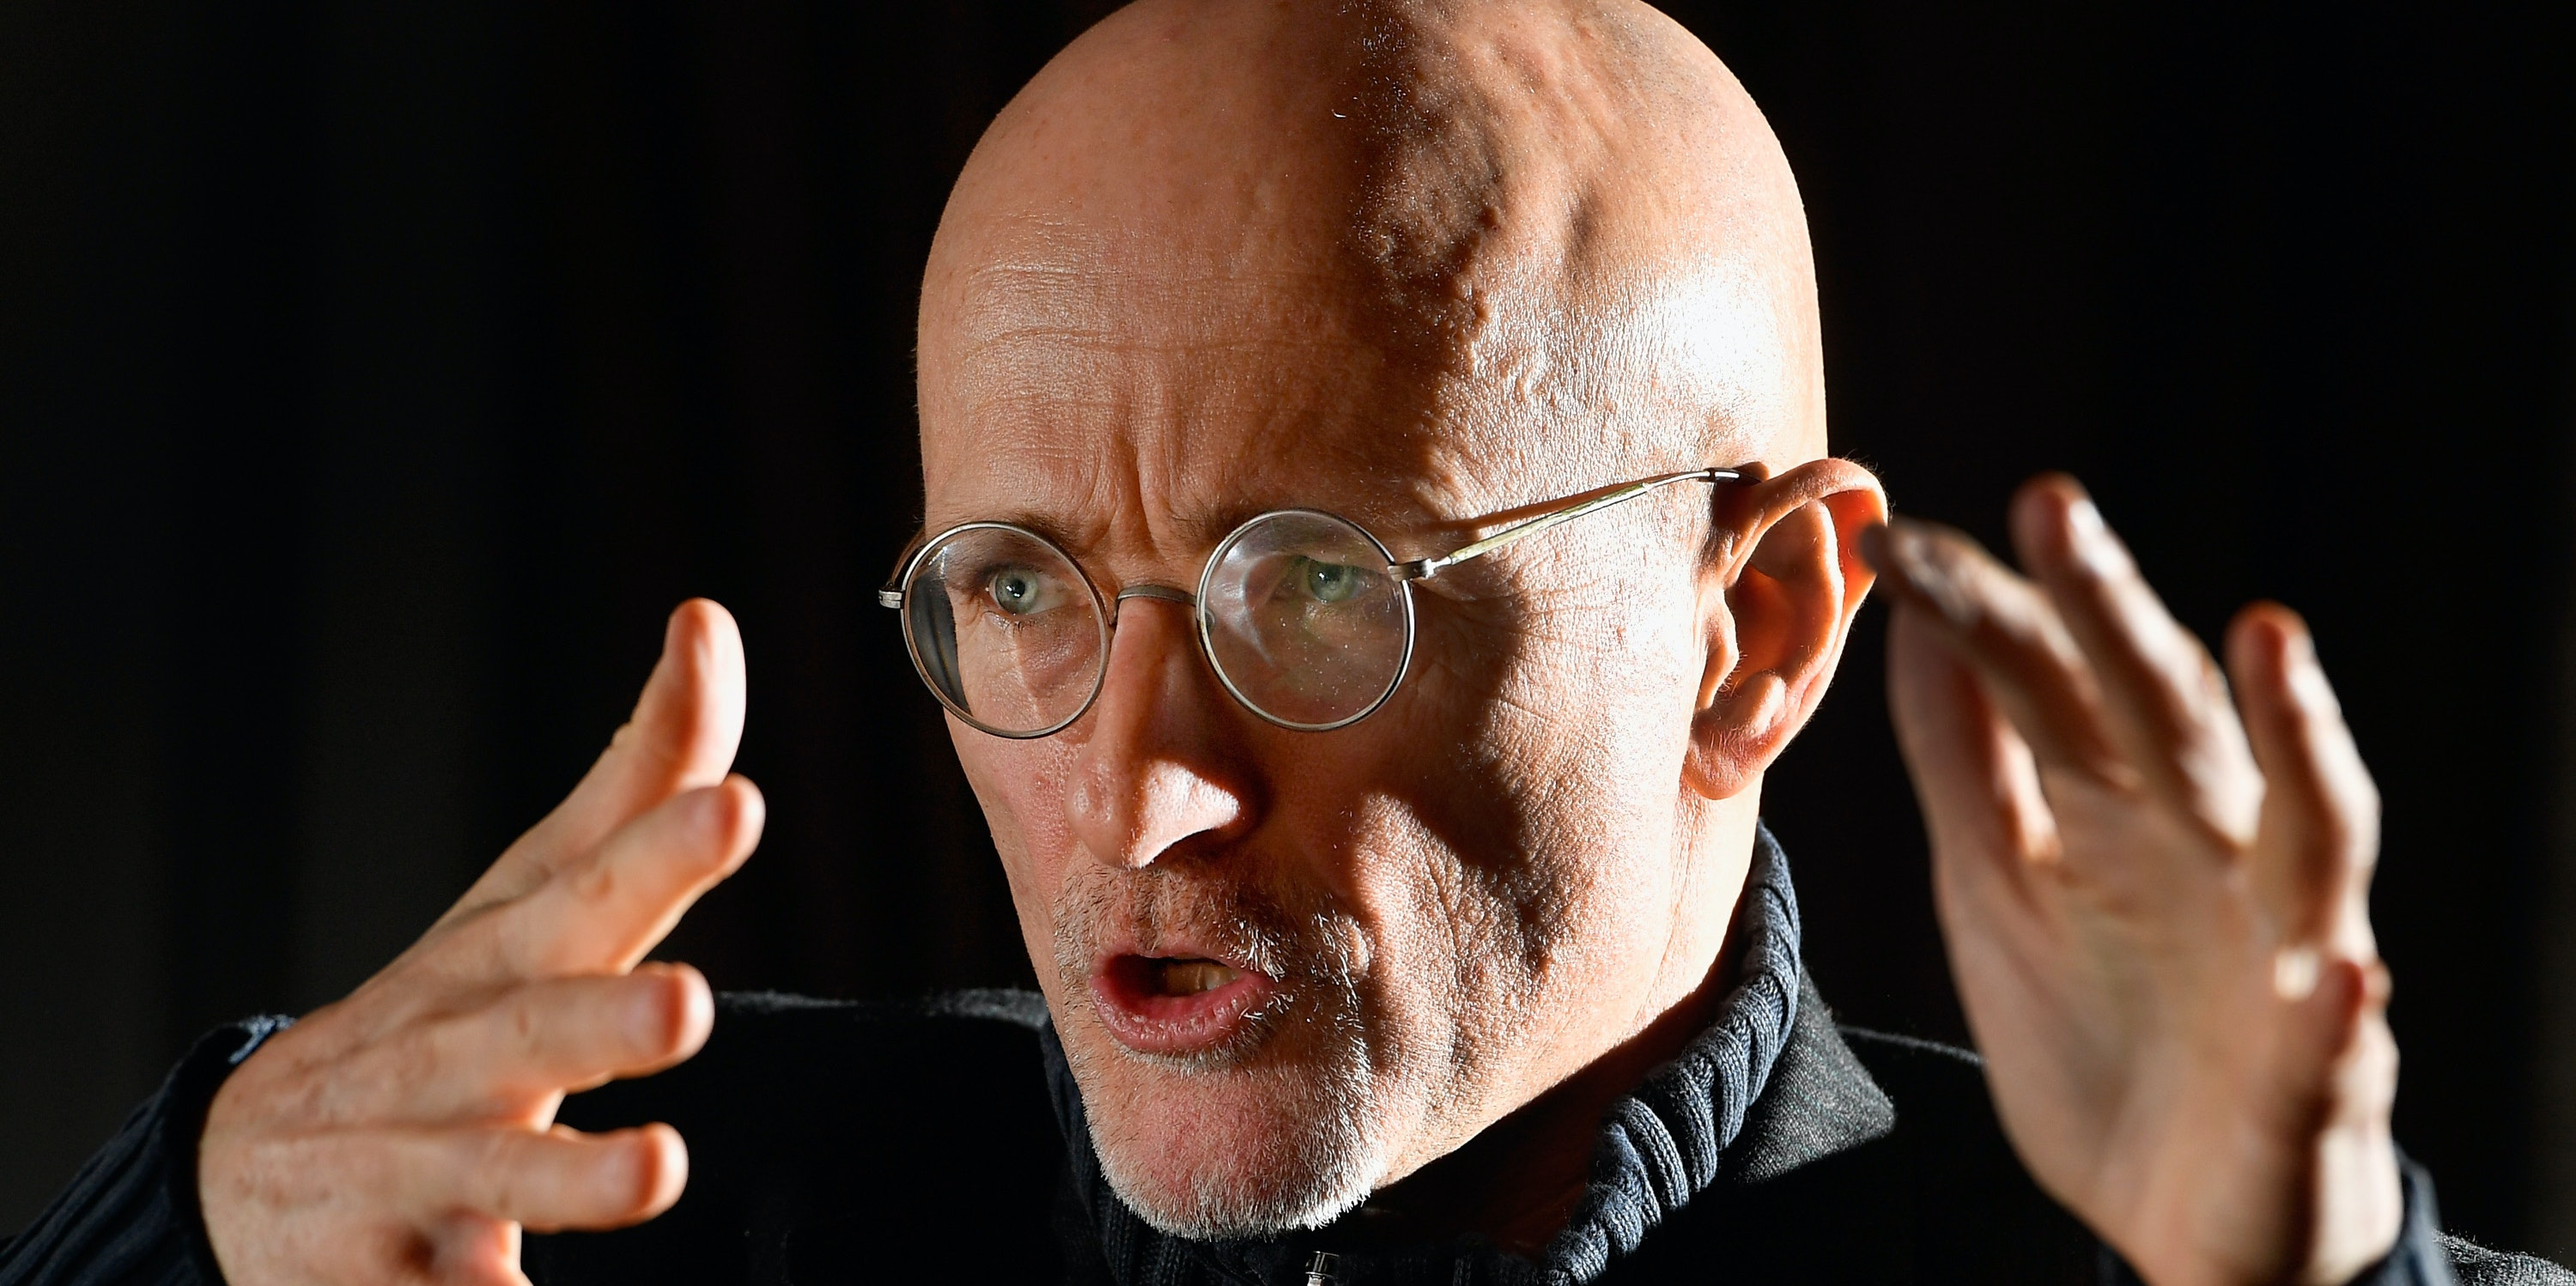 Scientist Has Performed a Human Head Transplant, But There's a Catch